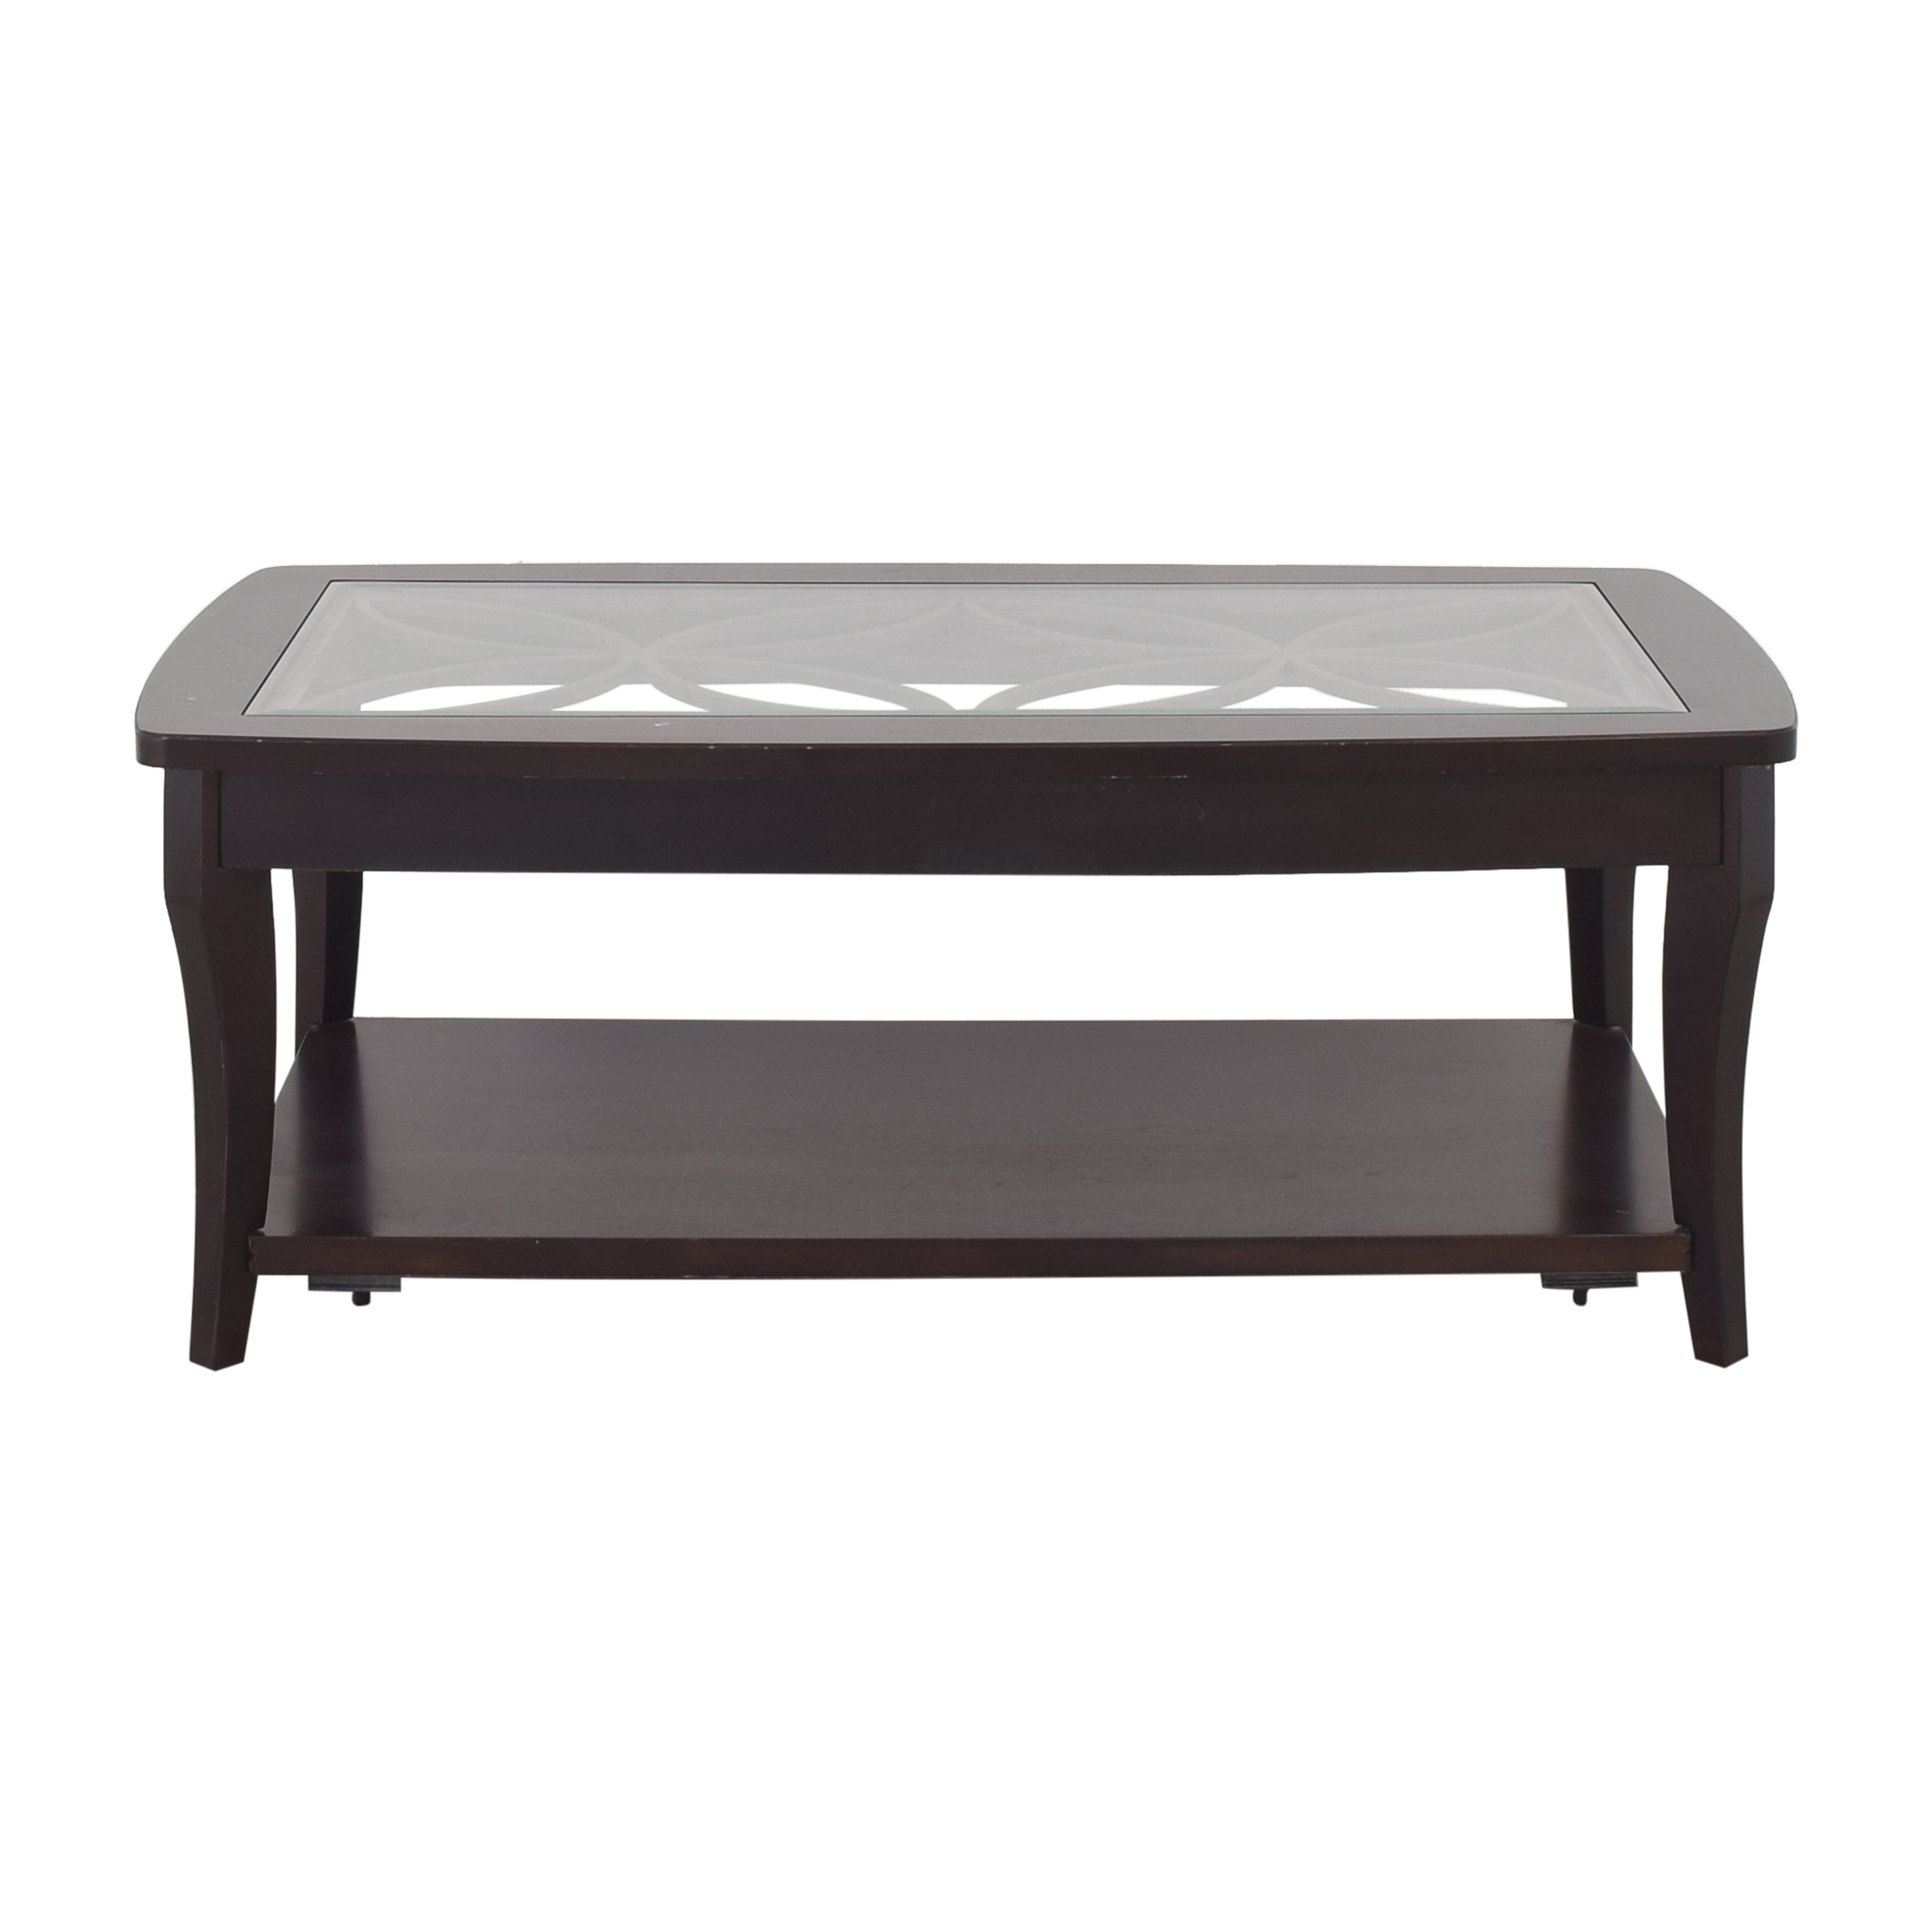 Raymour & Flanigan Raymour & Flanigan Annandale Coffee Table pa